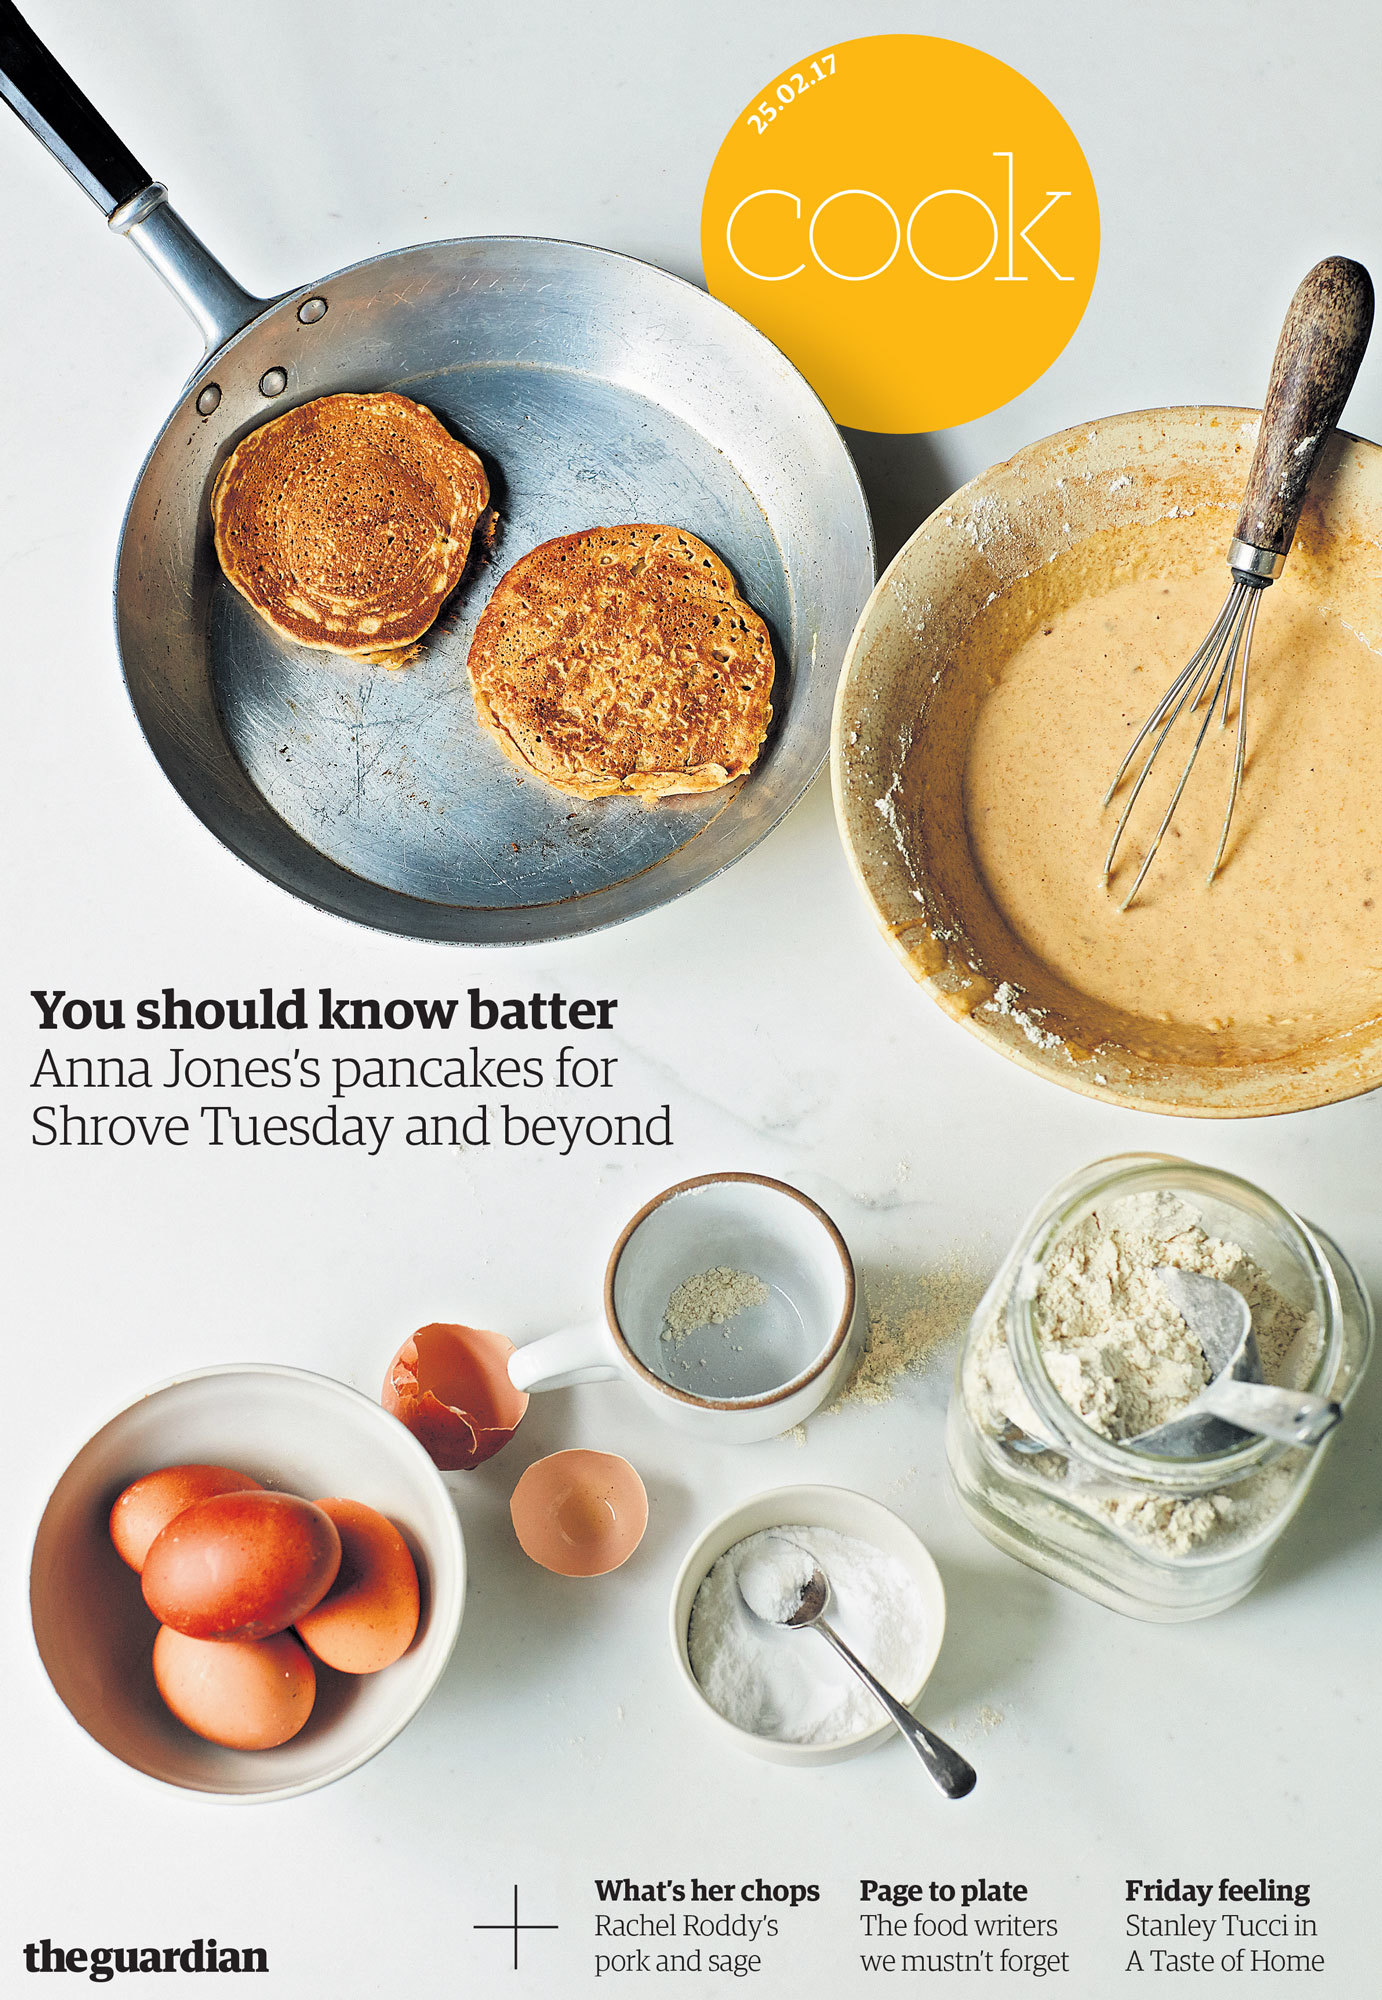 Matt russell for guardian cook blink arts wonderful matt russell has photographed anna jones shrove tuesday pancakes for an enticing front cover for guardian cook to find more recipes forumfinder Image collections